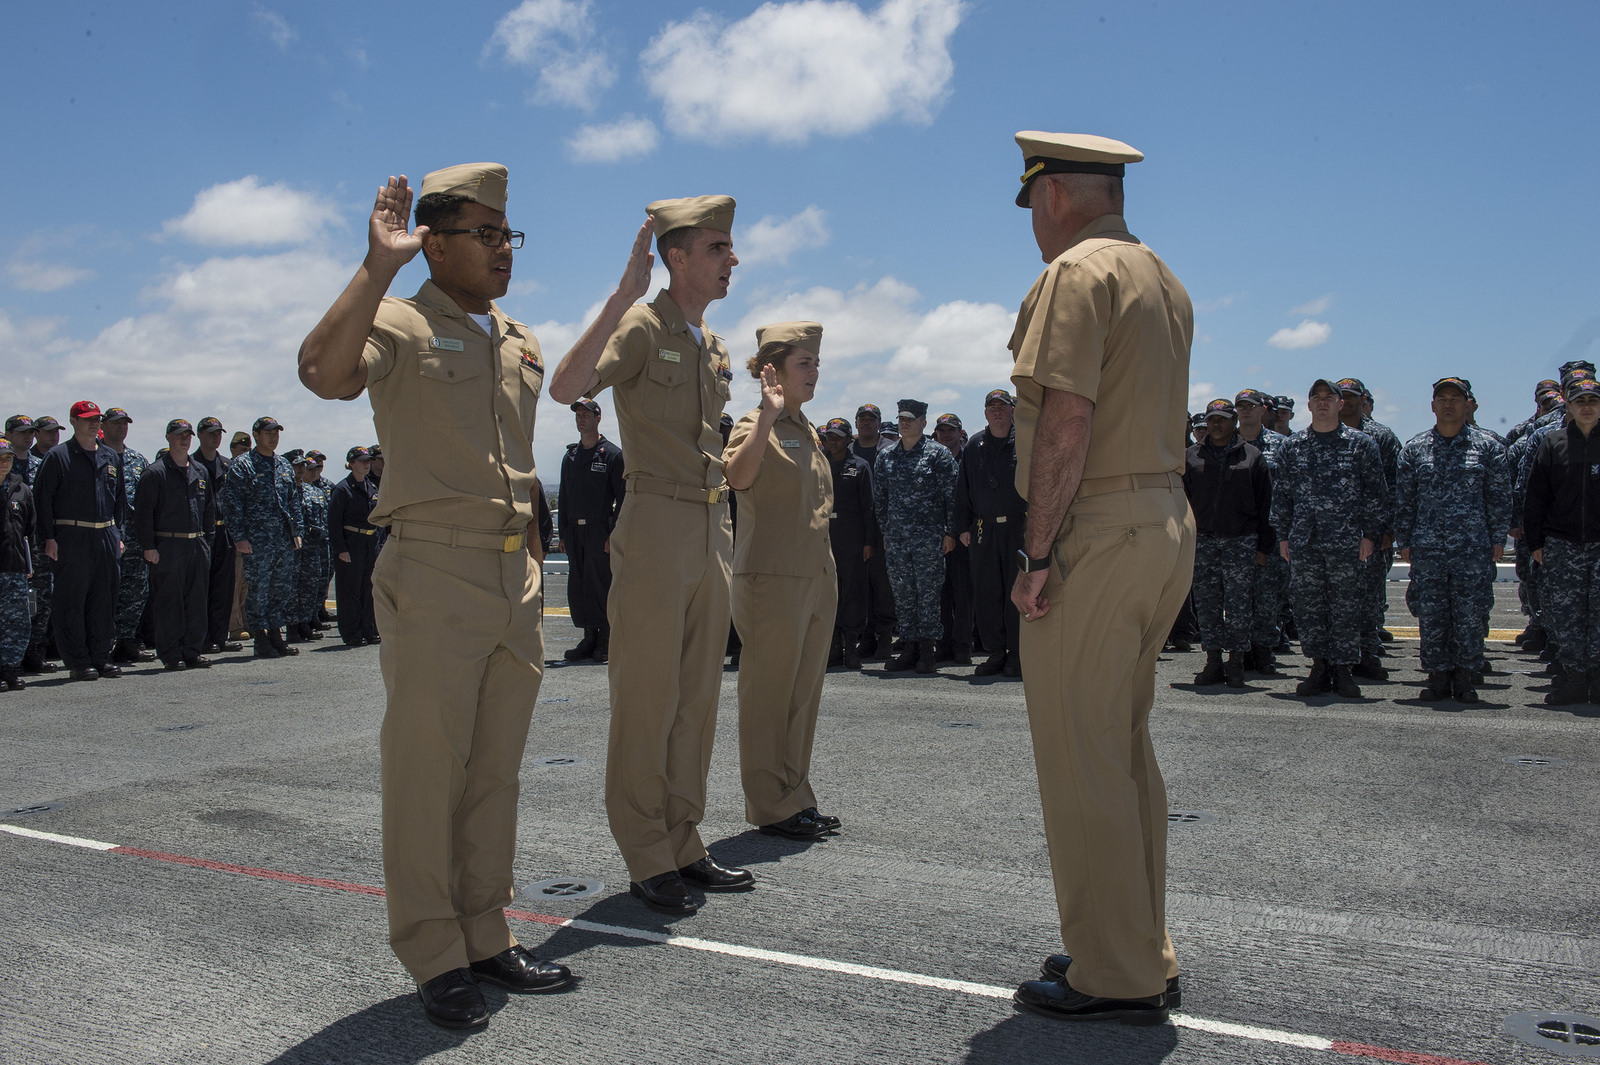 SAN DIEGO (May 23, 2016) USS Makin Island Commanding Officer Capt. Jon P. Rodgers (right) administers the Oath of Office to (left to right) Ensign Brennan Wyatt, from Greensboro, North Carolina, Ensign Derek Gilmartin, from Bakersfield, California, and Ensign Sarah Kline, from Apex, North Carolina, during their promotion to Lt. j.g. on the ship's flight deck. Makin Island is home-ported in San Diego, undergoing the basic training phase in preparation for a scheduled deployment this fall. (U.S. Navy Photo by Mass Communication Specialist Seaman Clark Lane/Released)